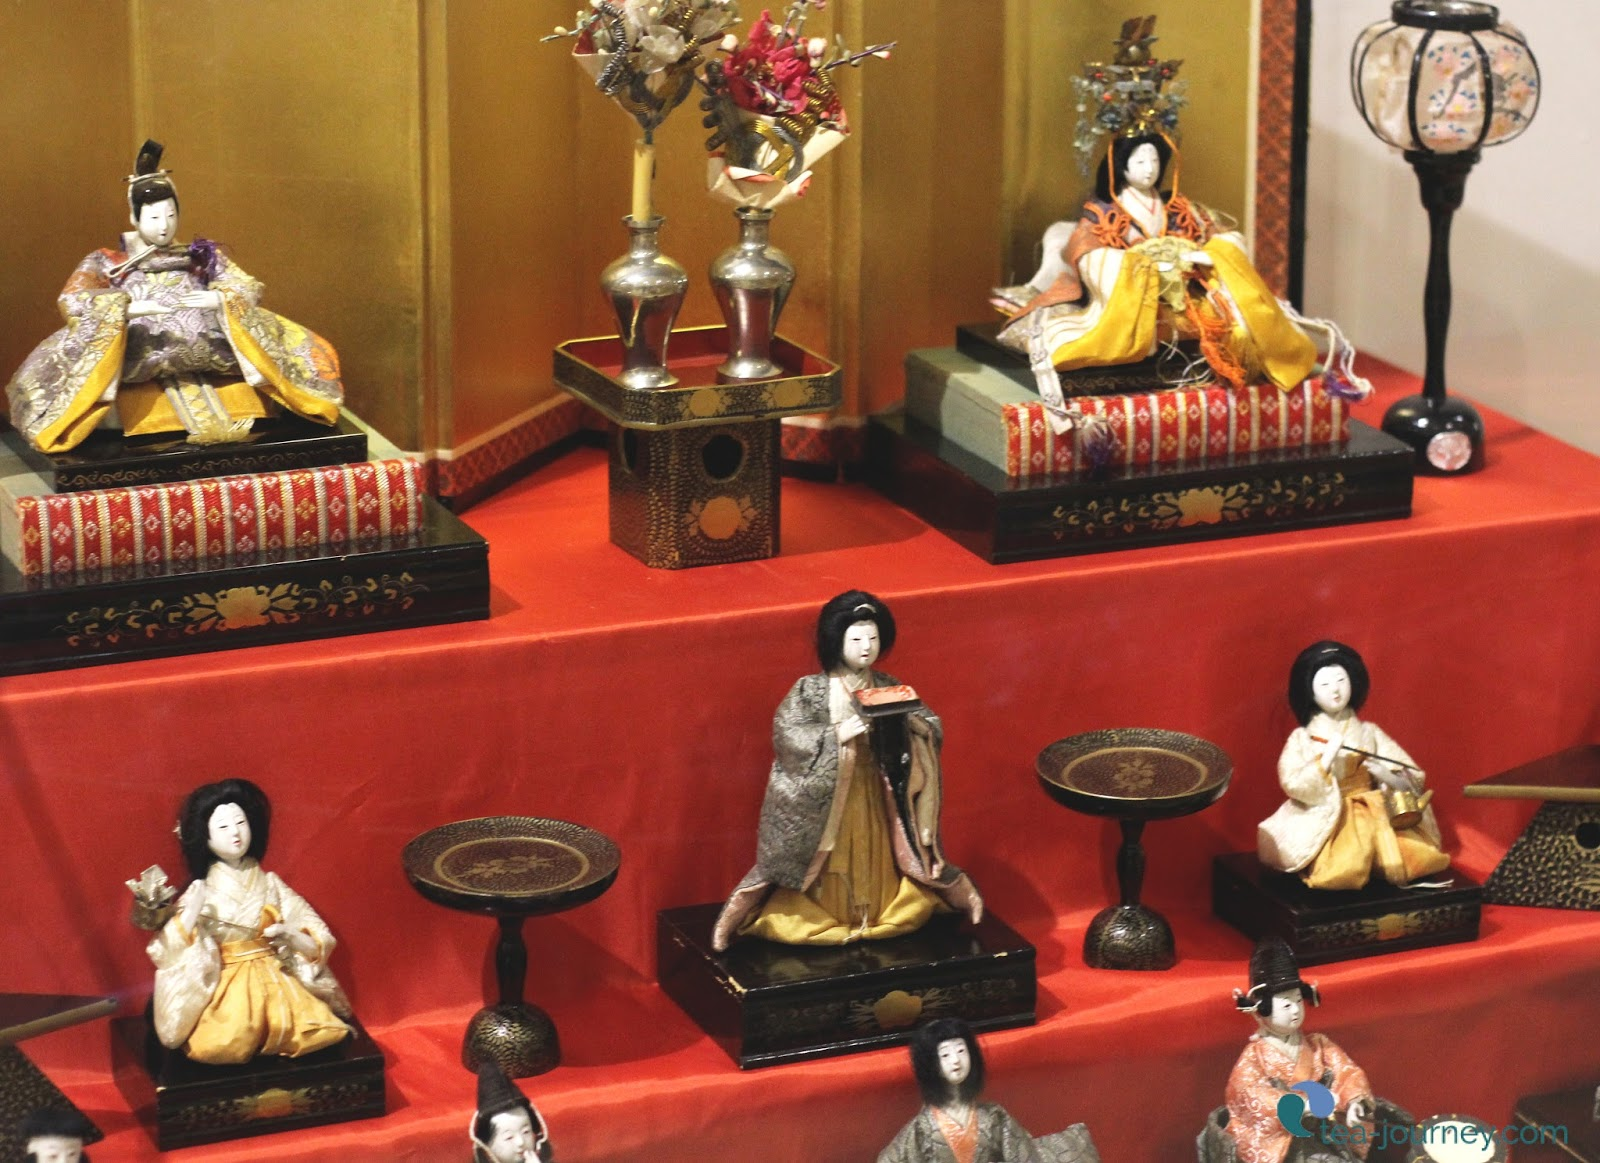 Japan has many ways to celebrate the seasons and life. Hinamatsuri is held every March 3rd to wish for the well being of daughters.